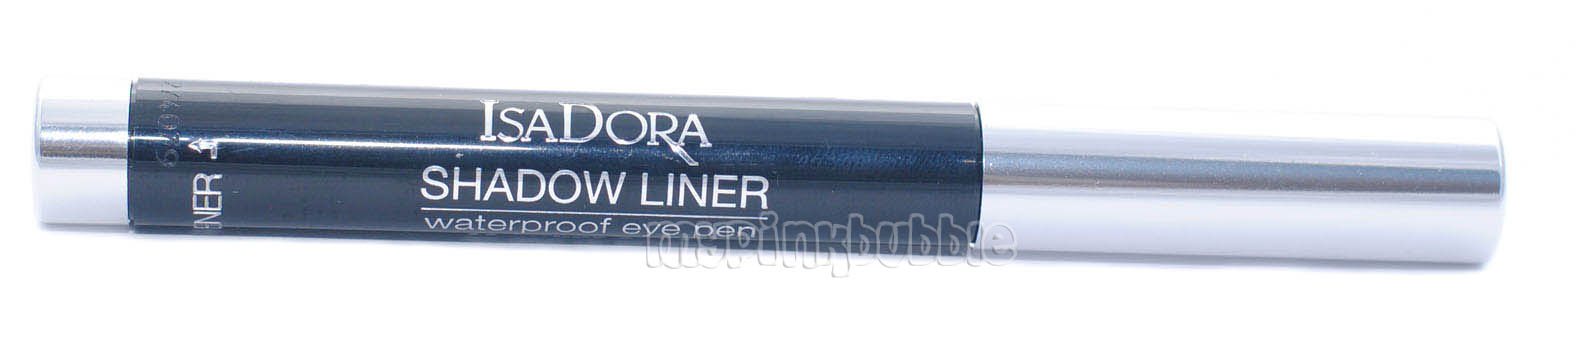 Isadora Shadow liner waterproof eye pen